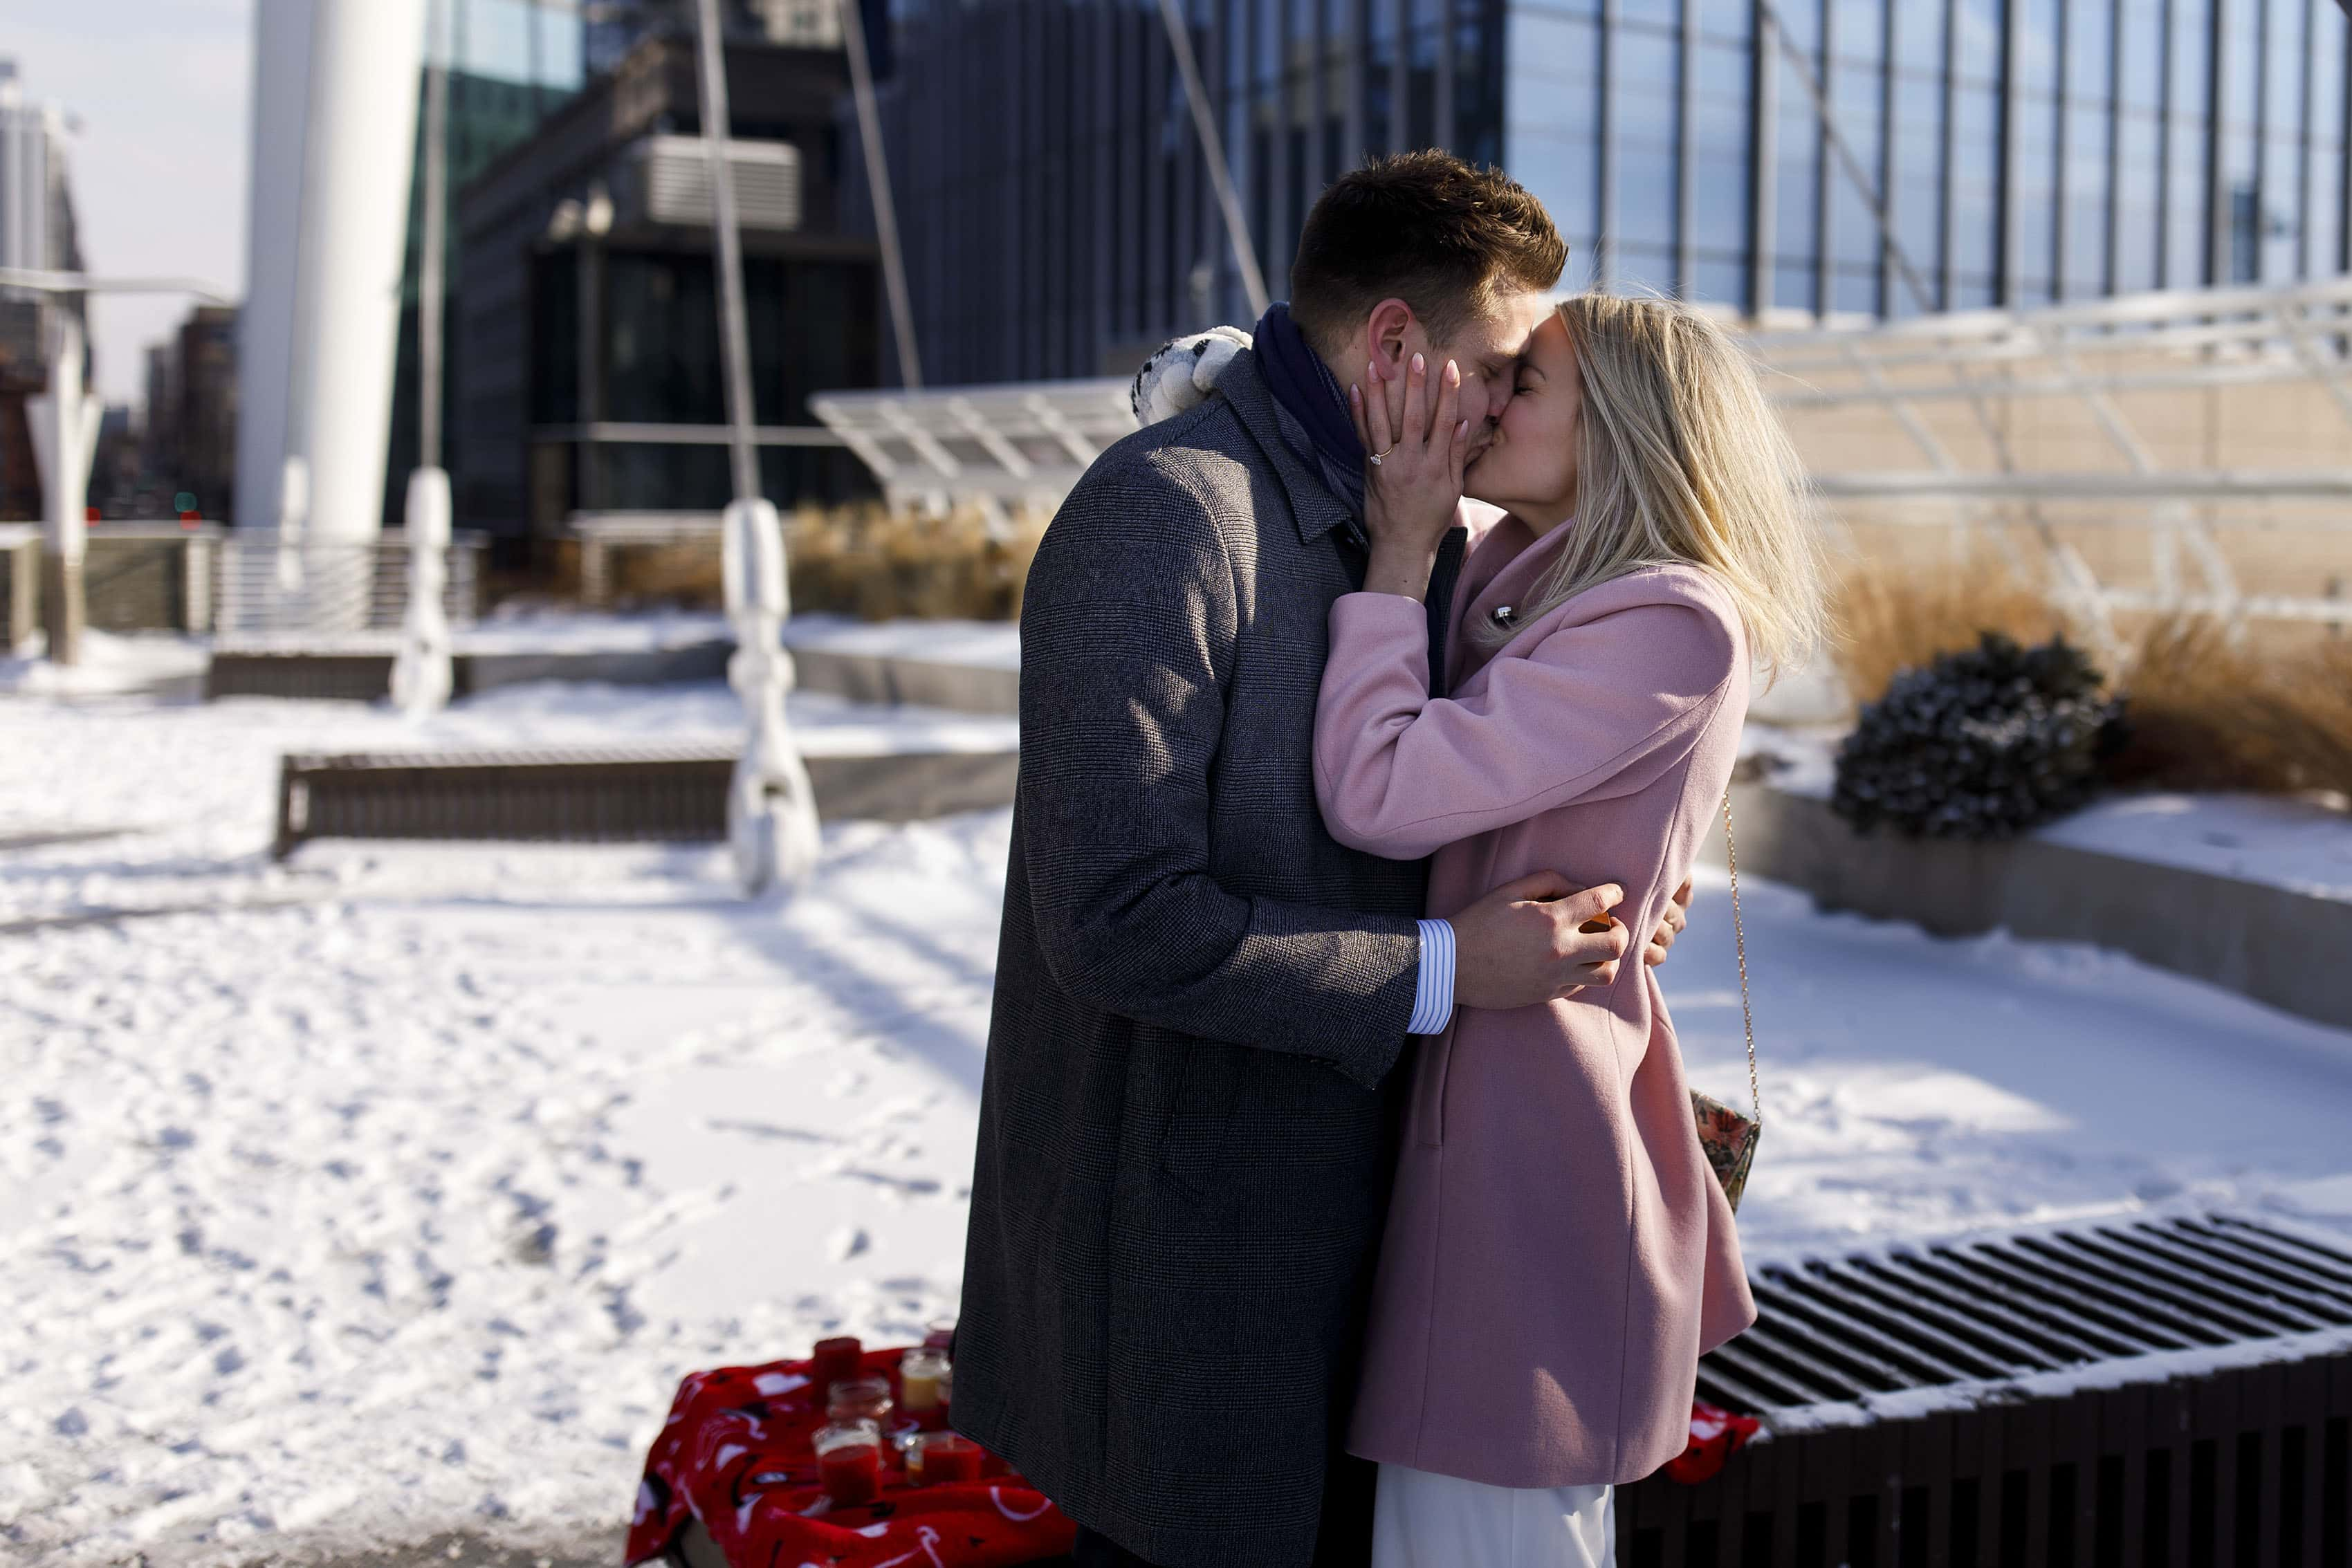 Kelly kisses Willy after he proposed on the Denver millennium bridge on Valentine's Day